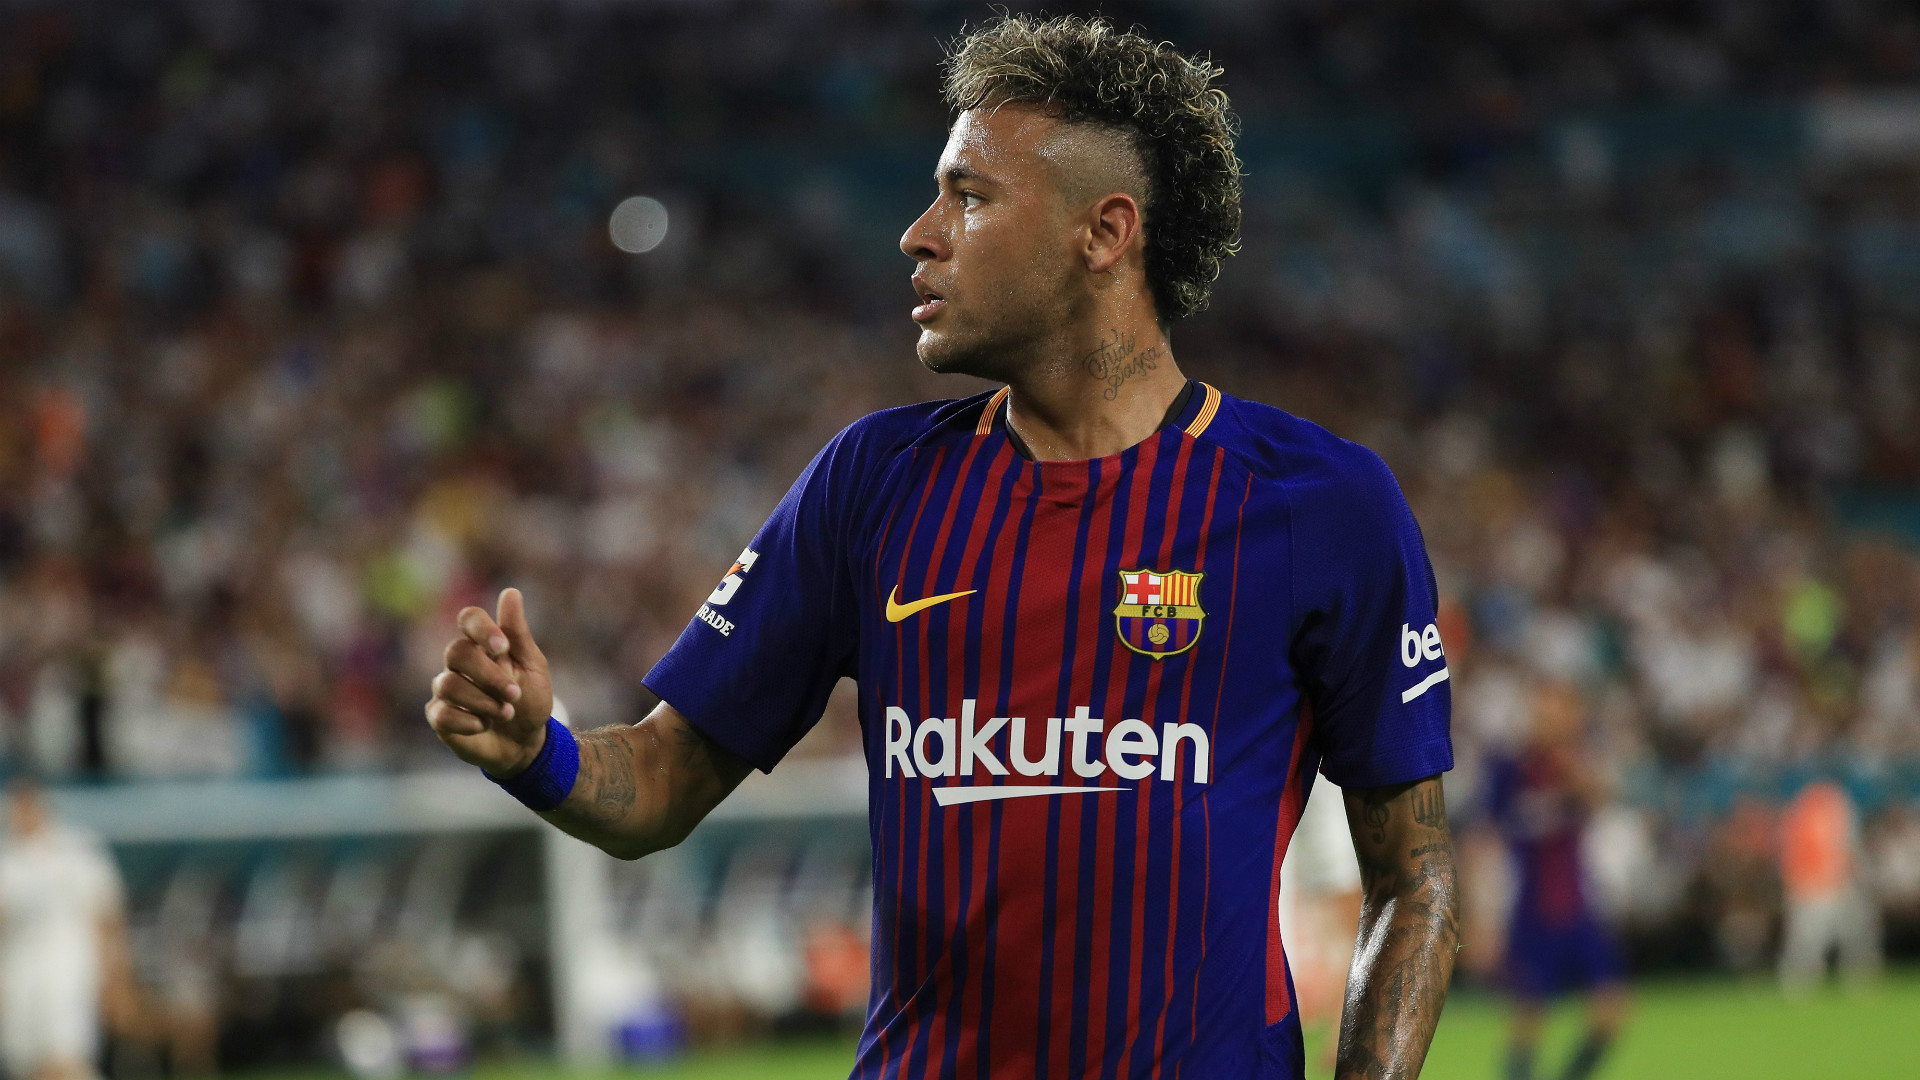 Is Neymar leaving Barcelona for PSG? How much is he worth? Your top questions answered